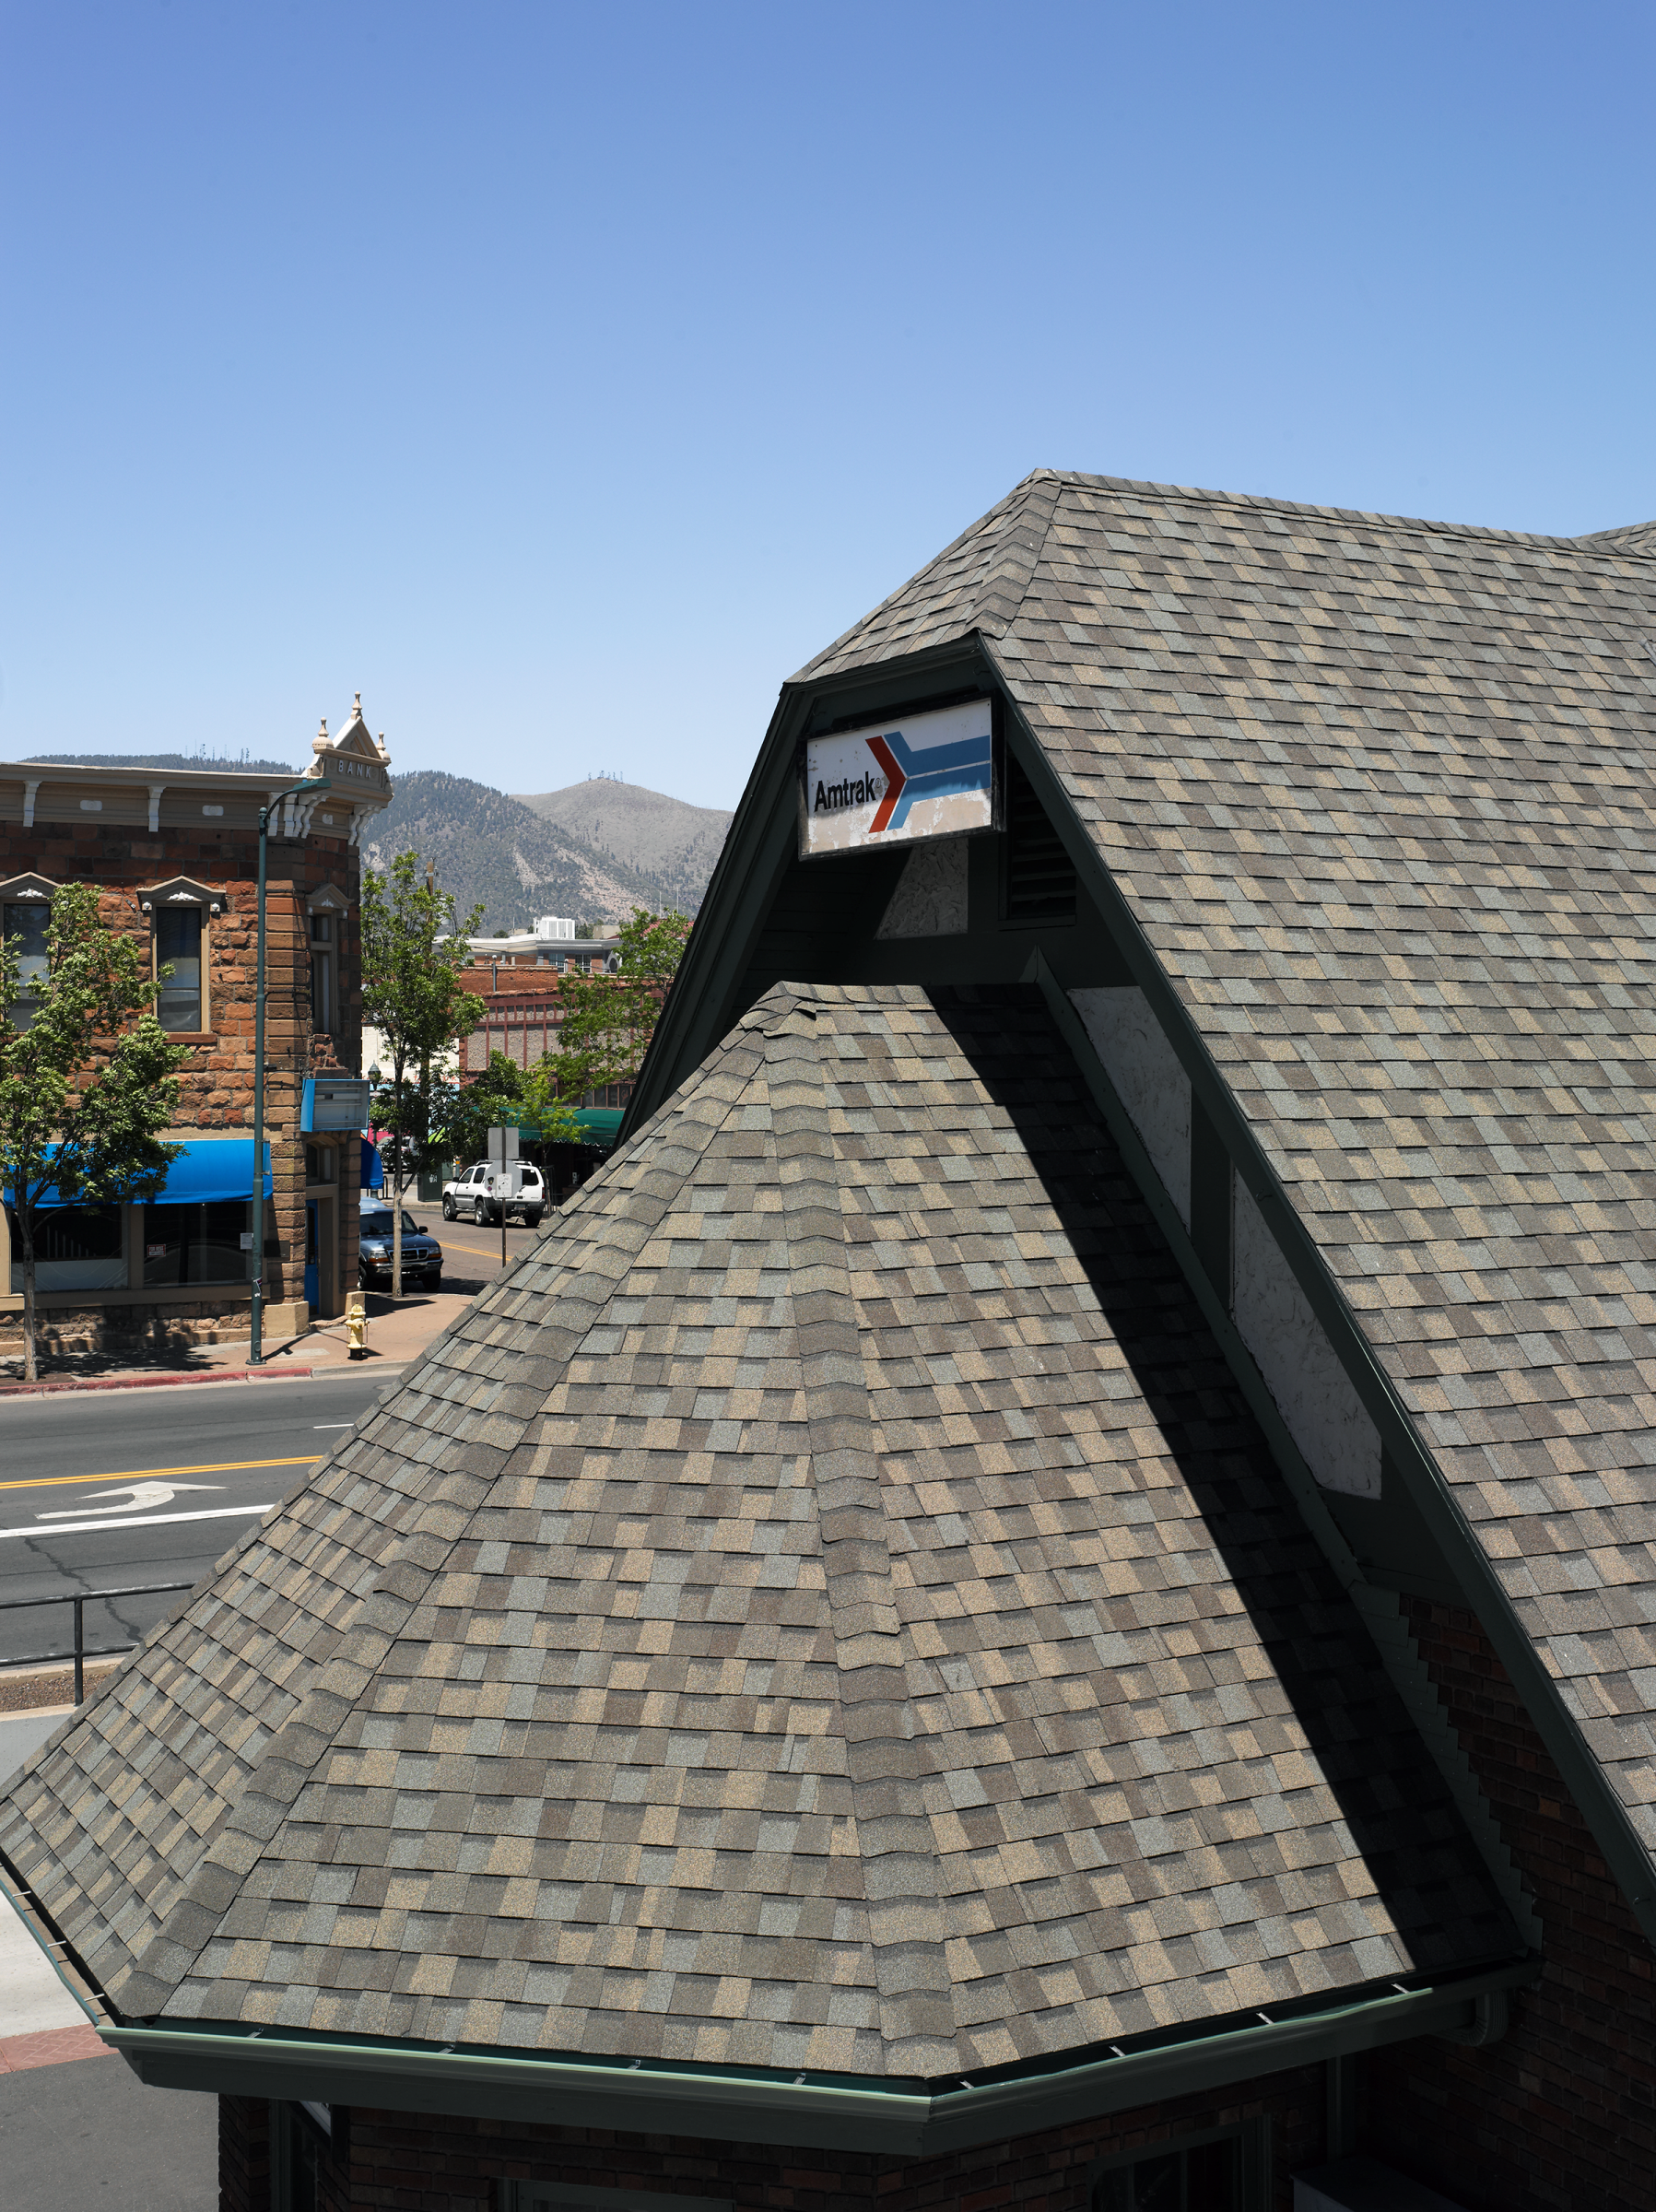 Certainteed Landmark Premium Designer Shingles In Weathered Wood On The Flagstaff Visitor Center And Amtrak Station Residential Roofing Roofing Roof Colors